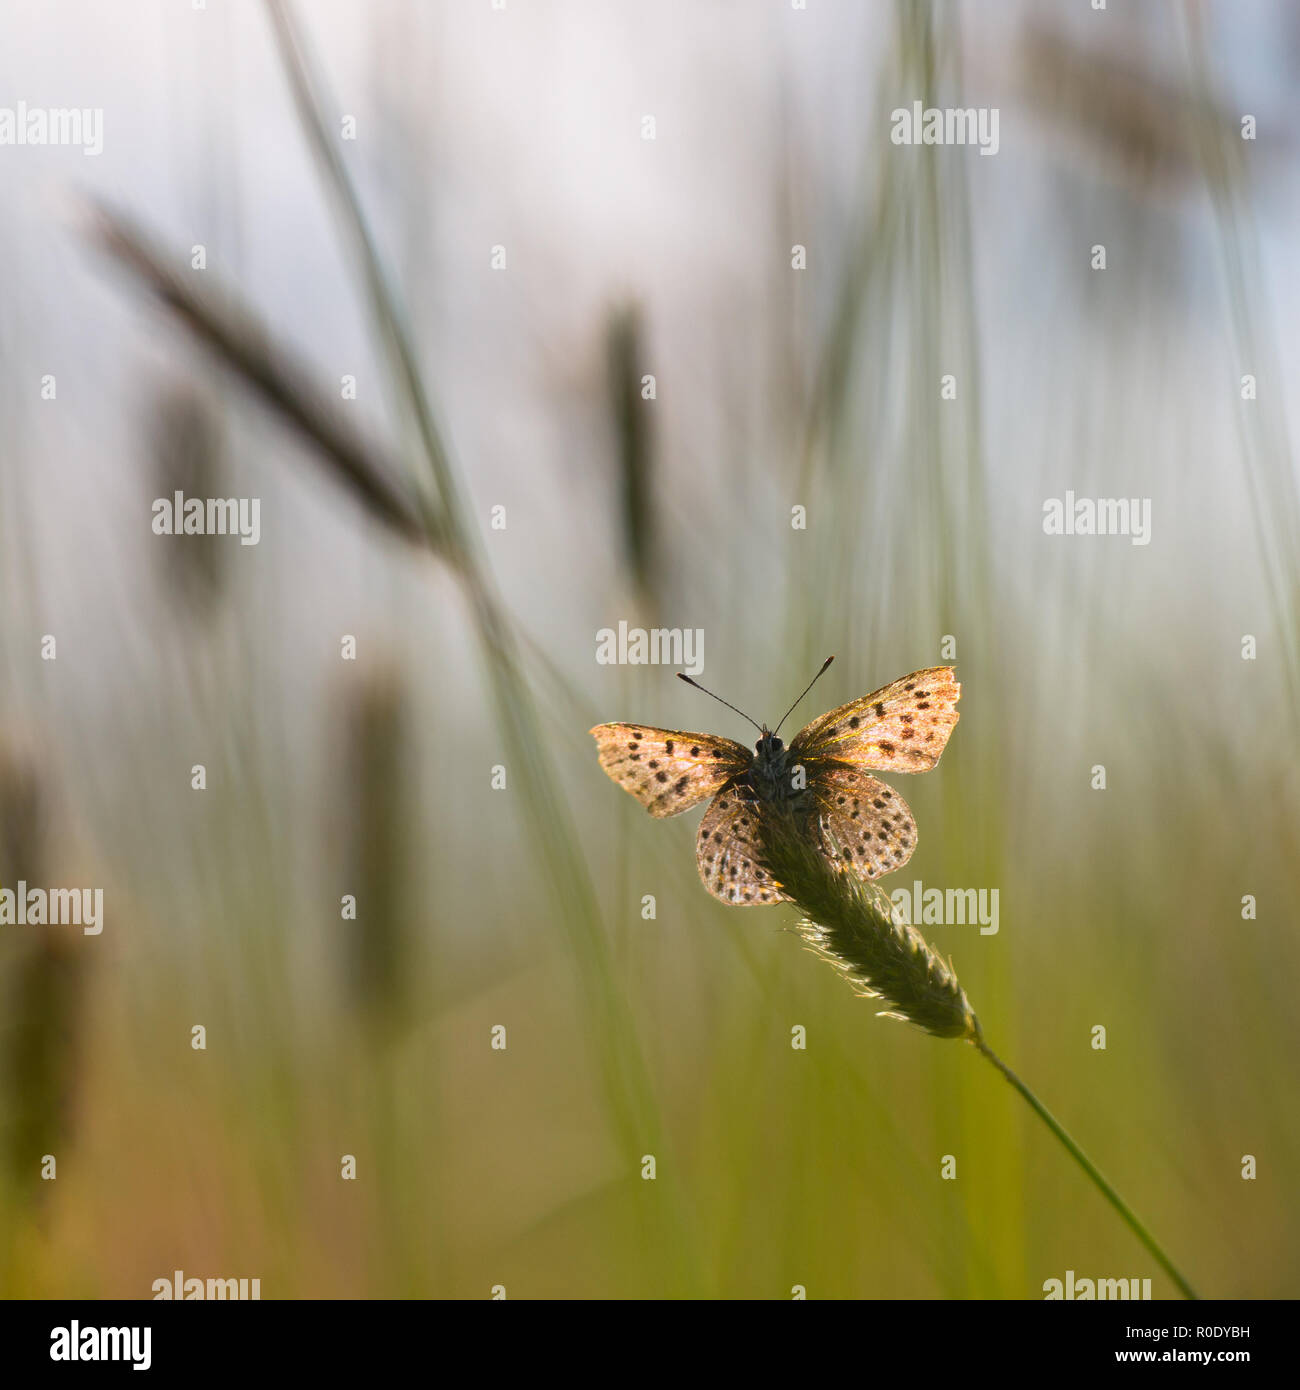 Sun Shines through Wings of Sooty Copper Butterfly (Lycaena tityrus) in a Field of Grass - Stock Image